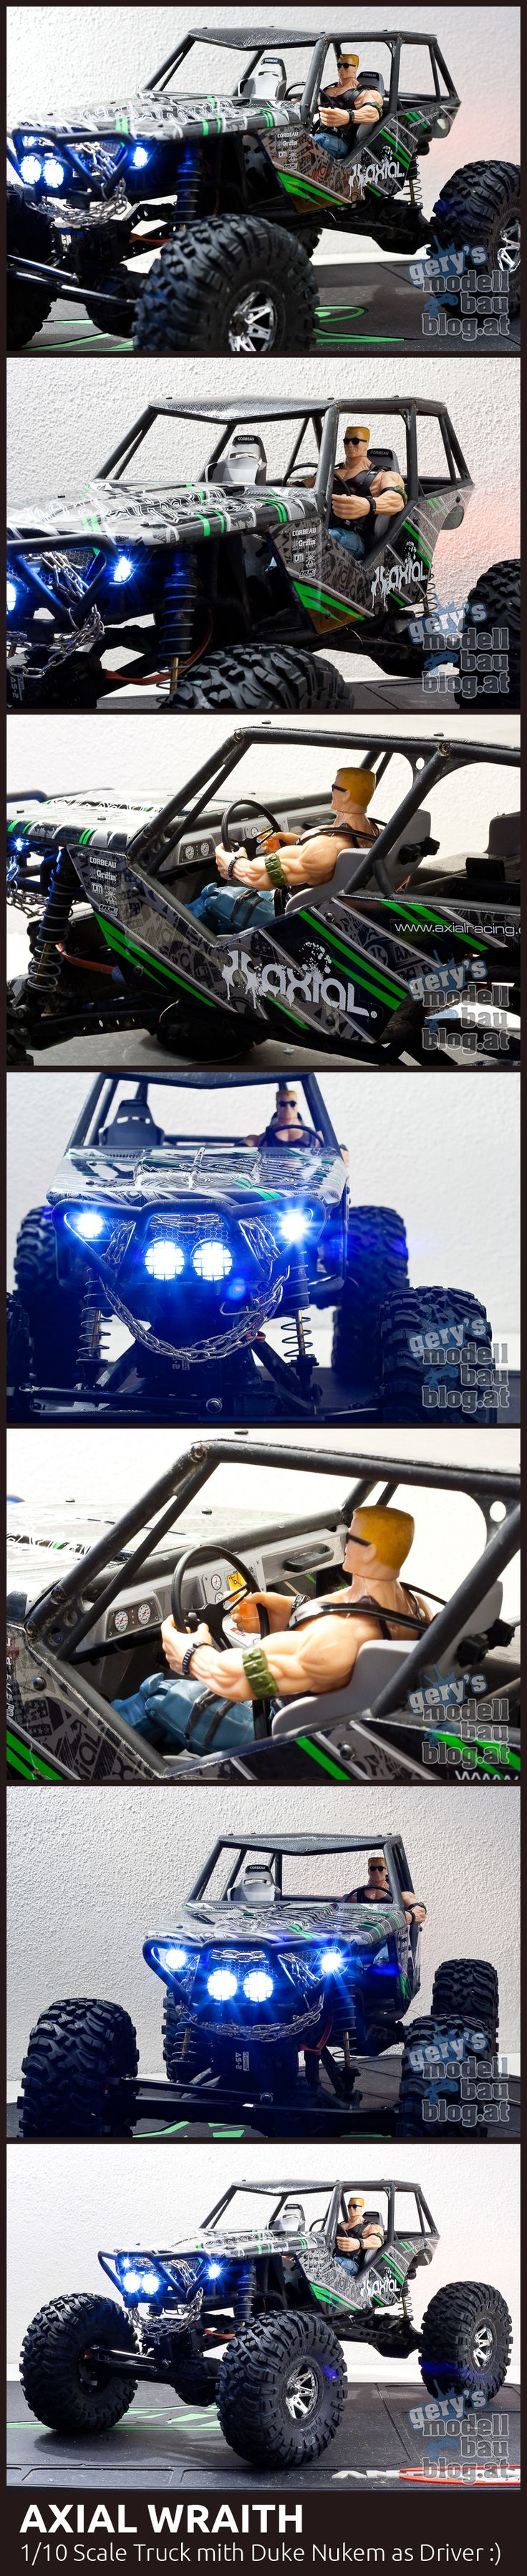 AXIAL WRAITH  1/10 Scale Truck mith Duke Nukem as Driver :)  More Pics @ http://fb.me/modellbaublog